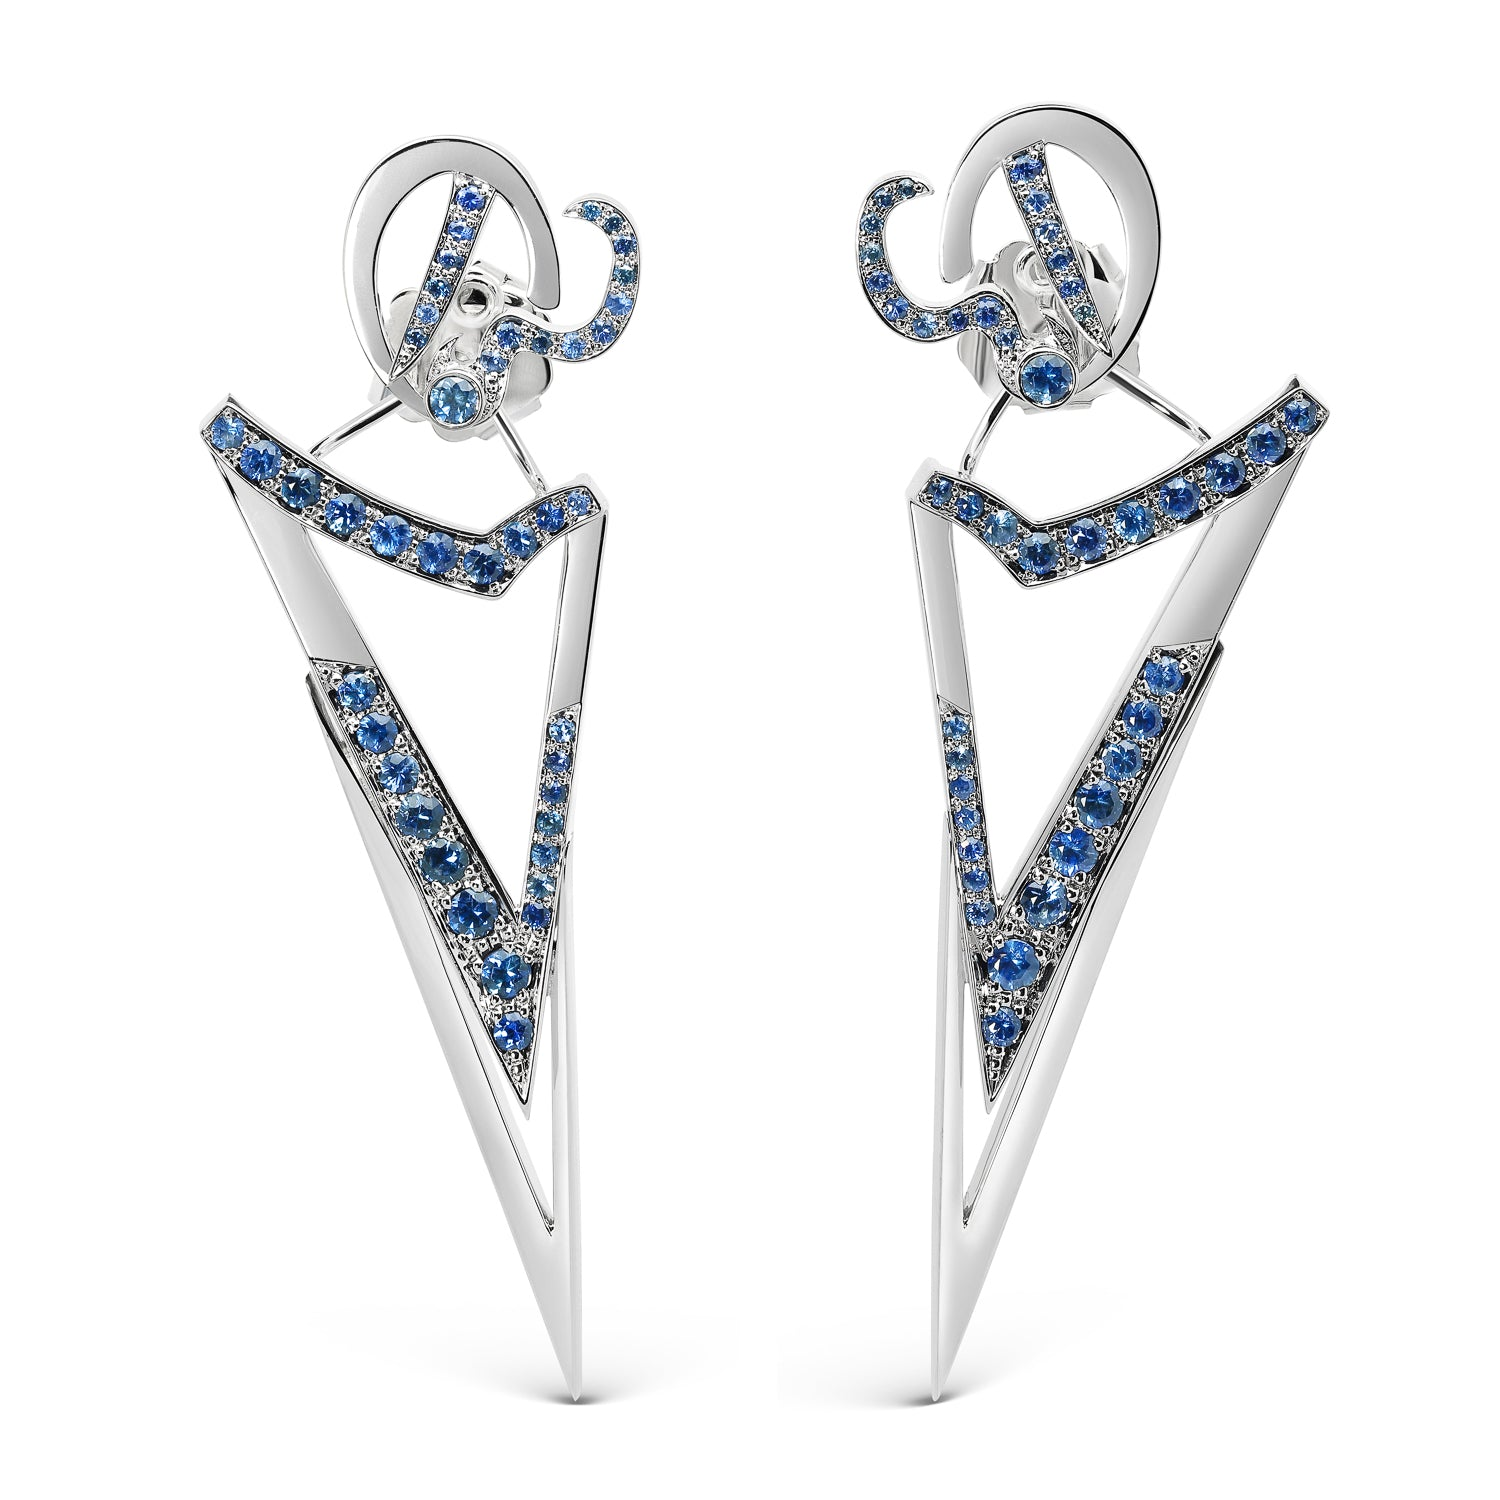 Bespoke Arrow Sapphire Earrings